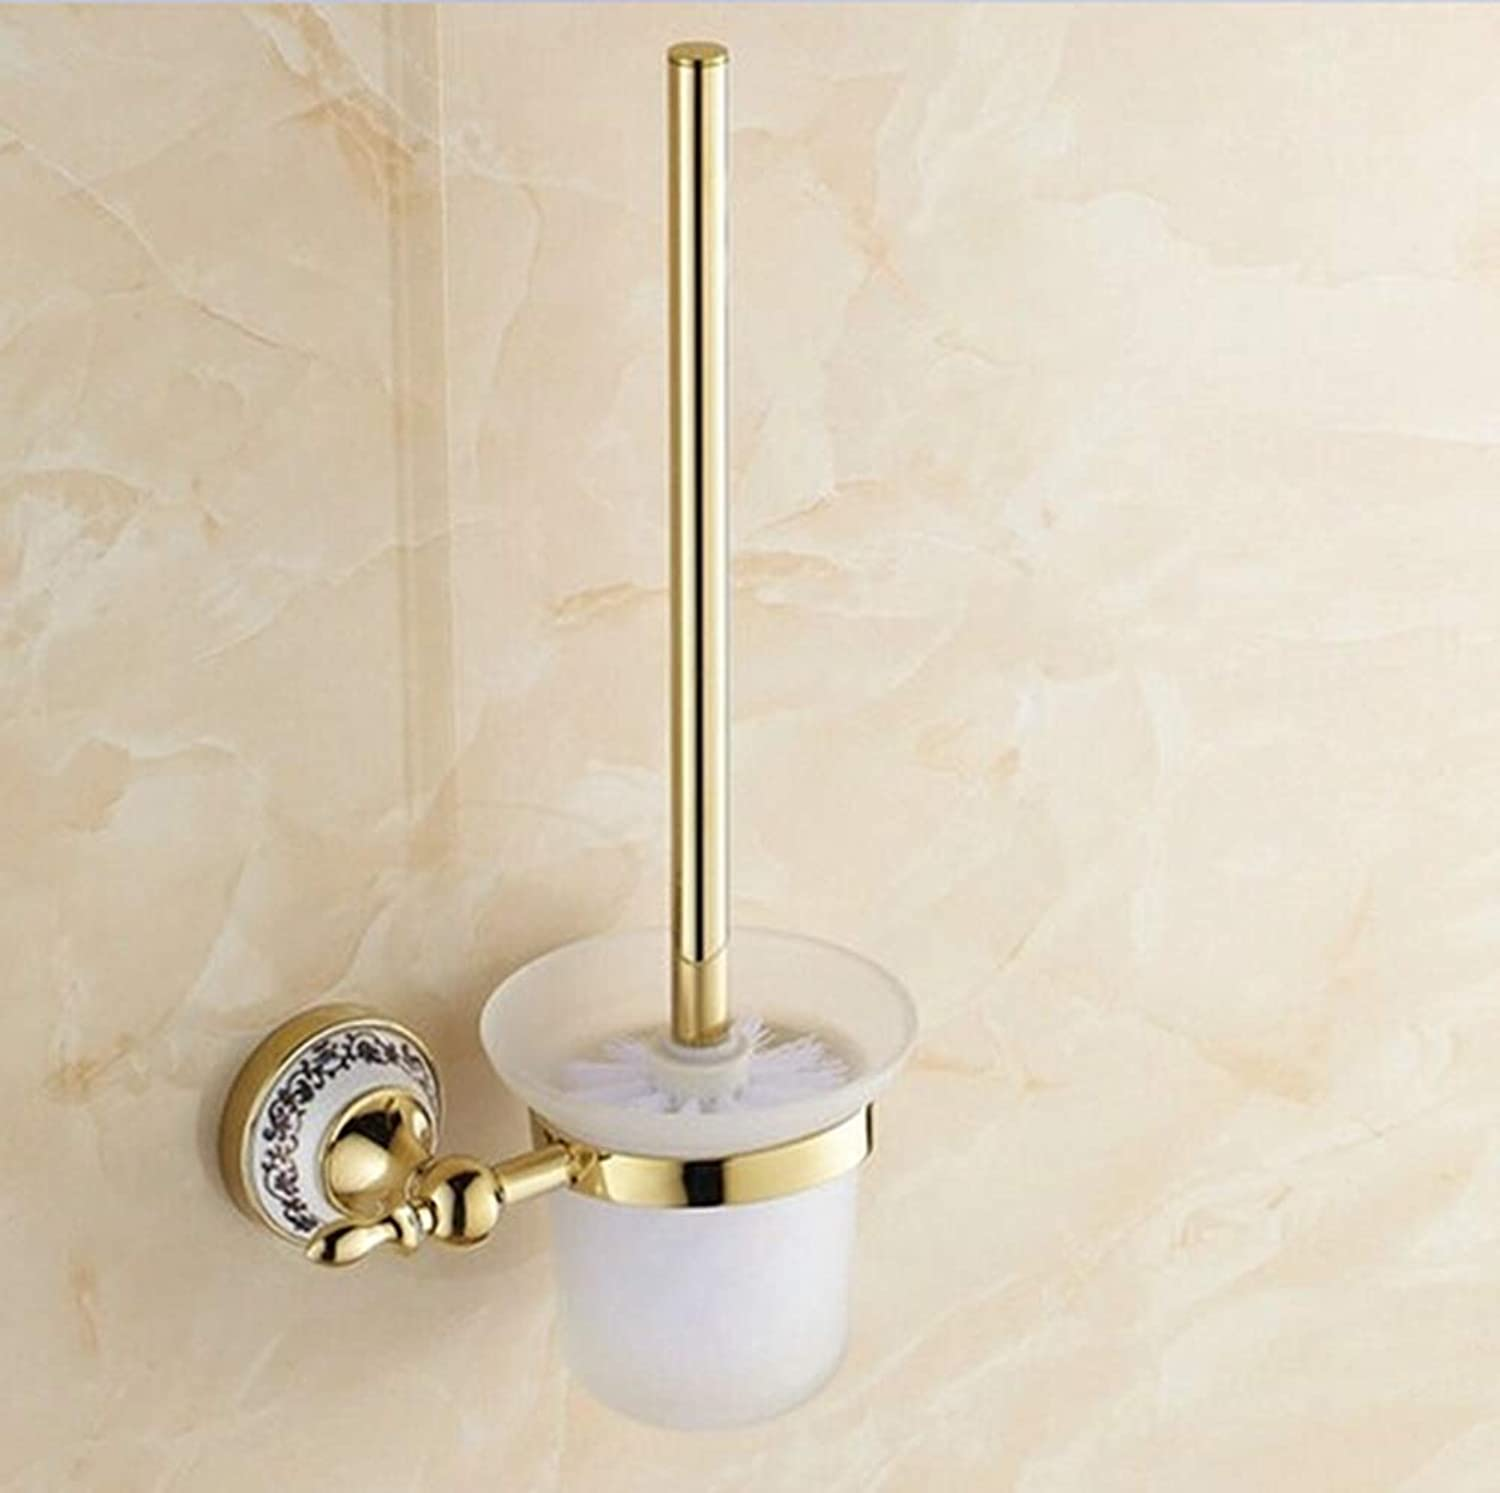 LUDSUY Bathroom Accessories gold Toilet Brush Holder,Stainless Steel Construction Base Porcelain Decorative+Frosted Glass Cup,Bathroom Accessories